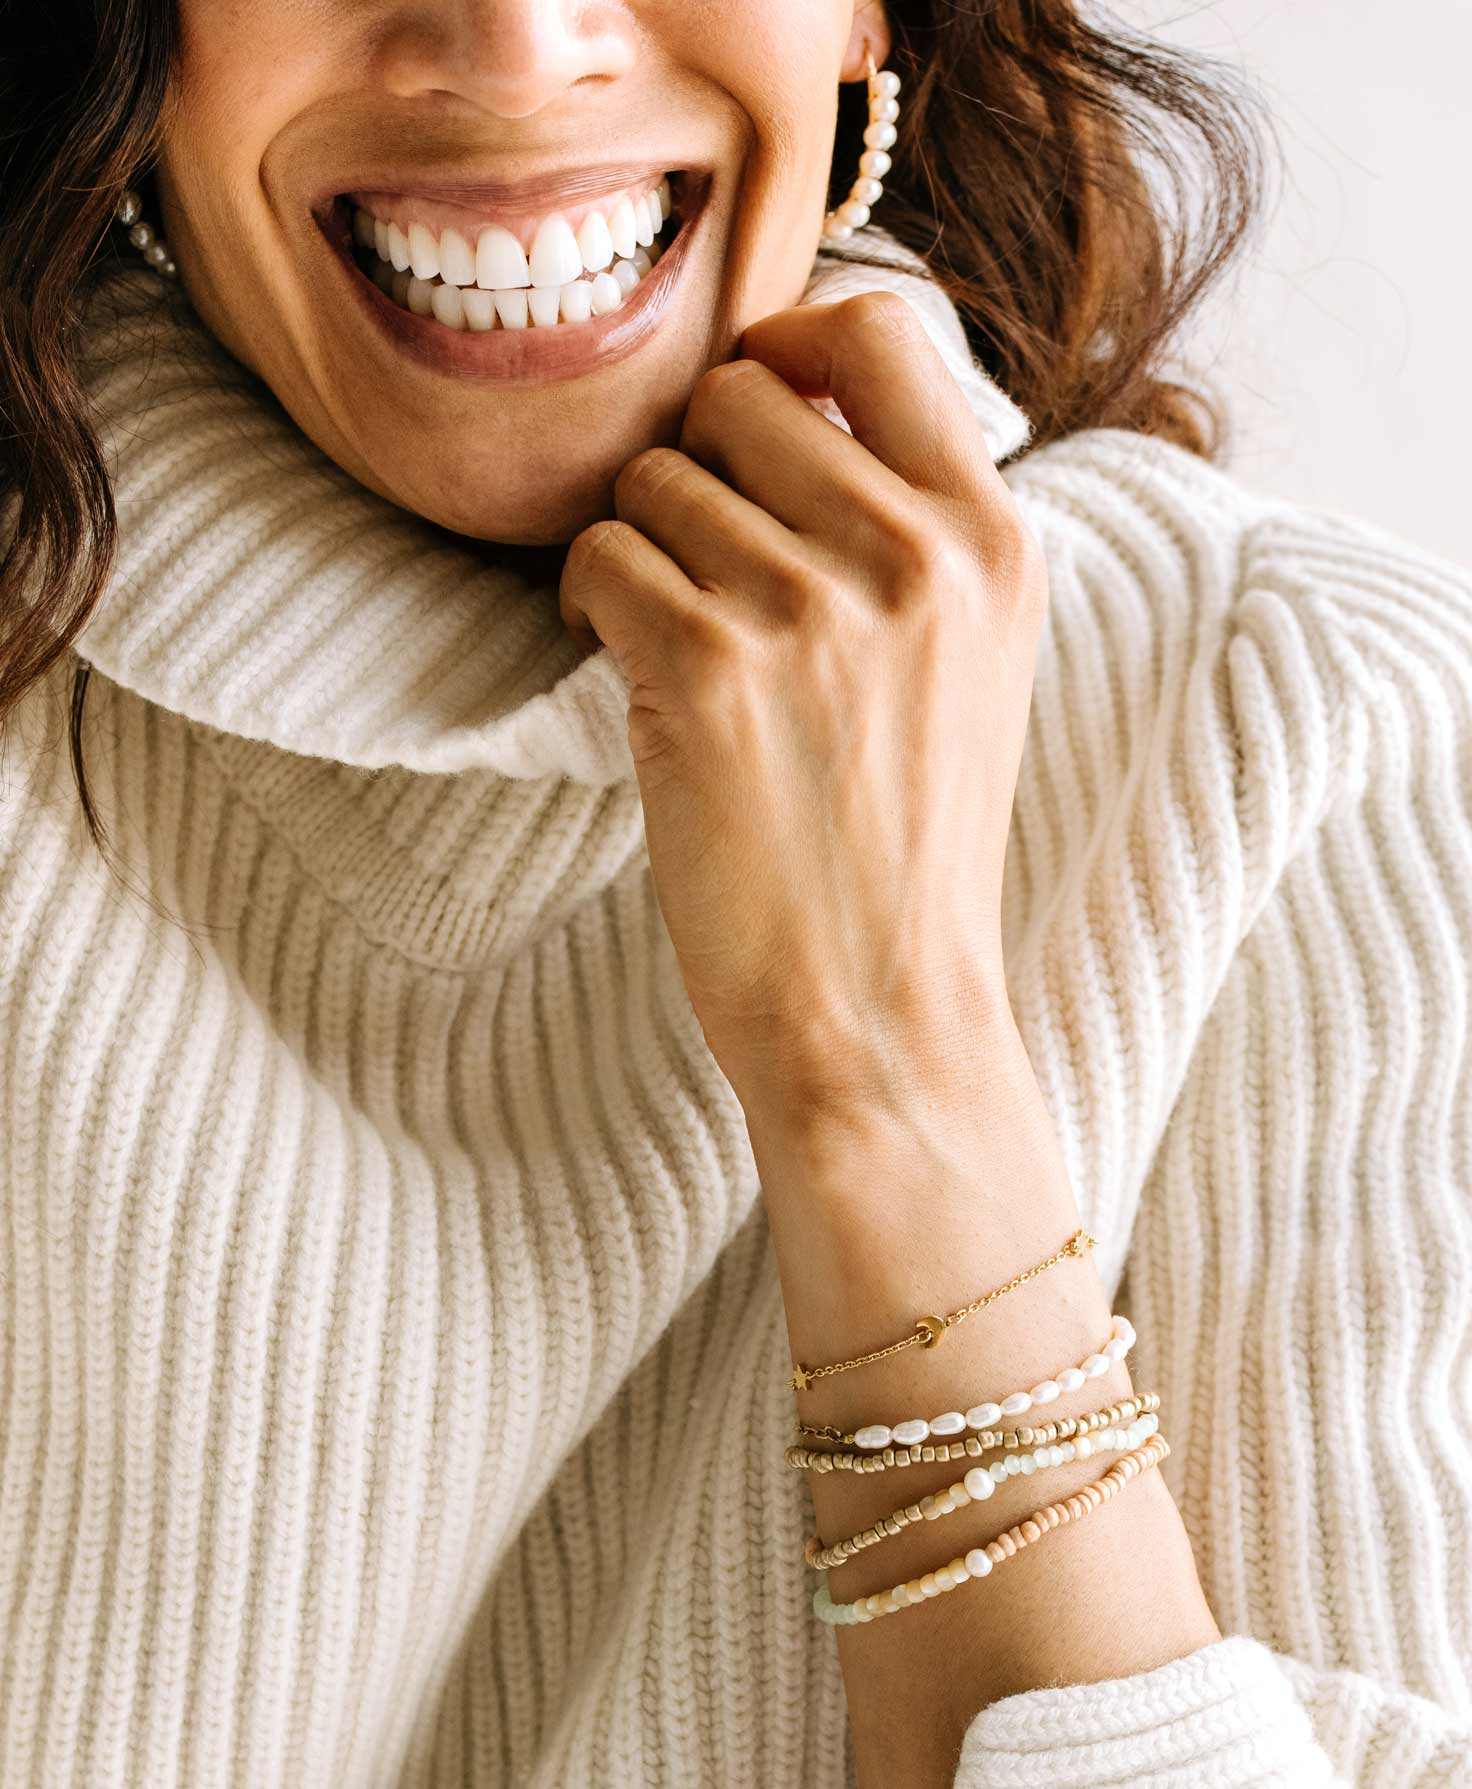 A model wears the Stargazer Bracelet layered with a stack of other bracelets featuring gold metal and a soft color palette. She finishes her look with the gold and pearl League Earrings.